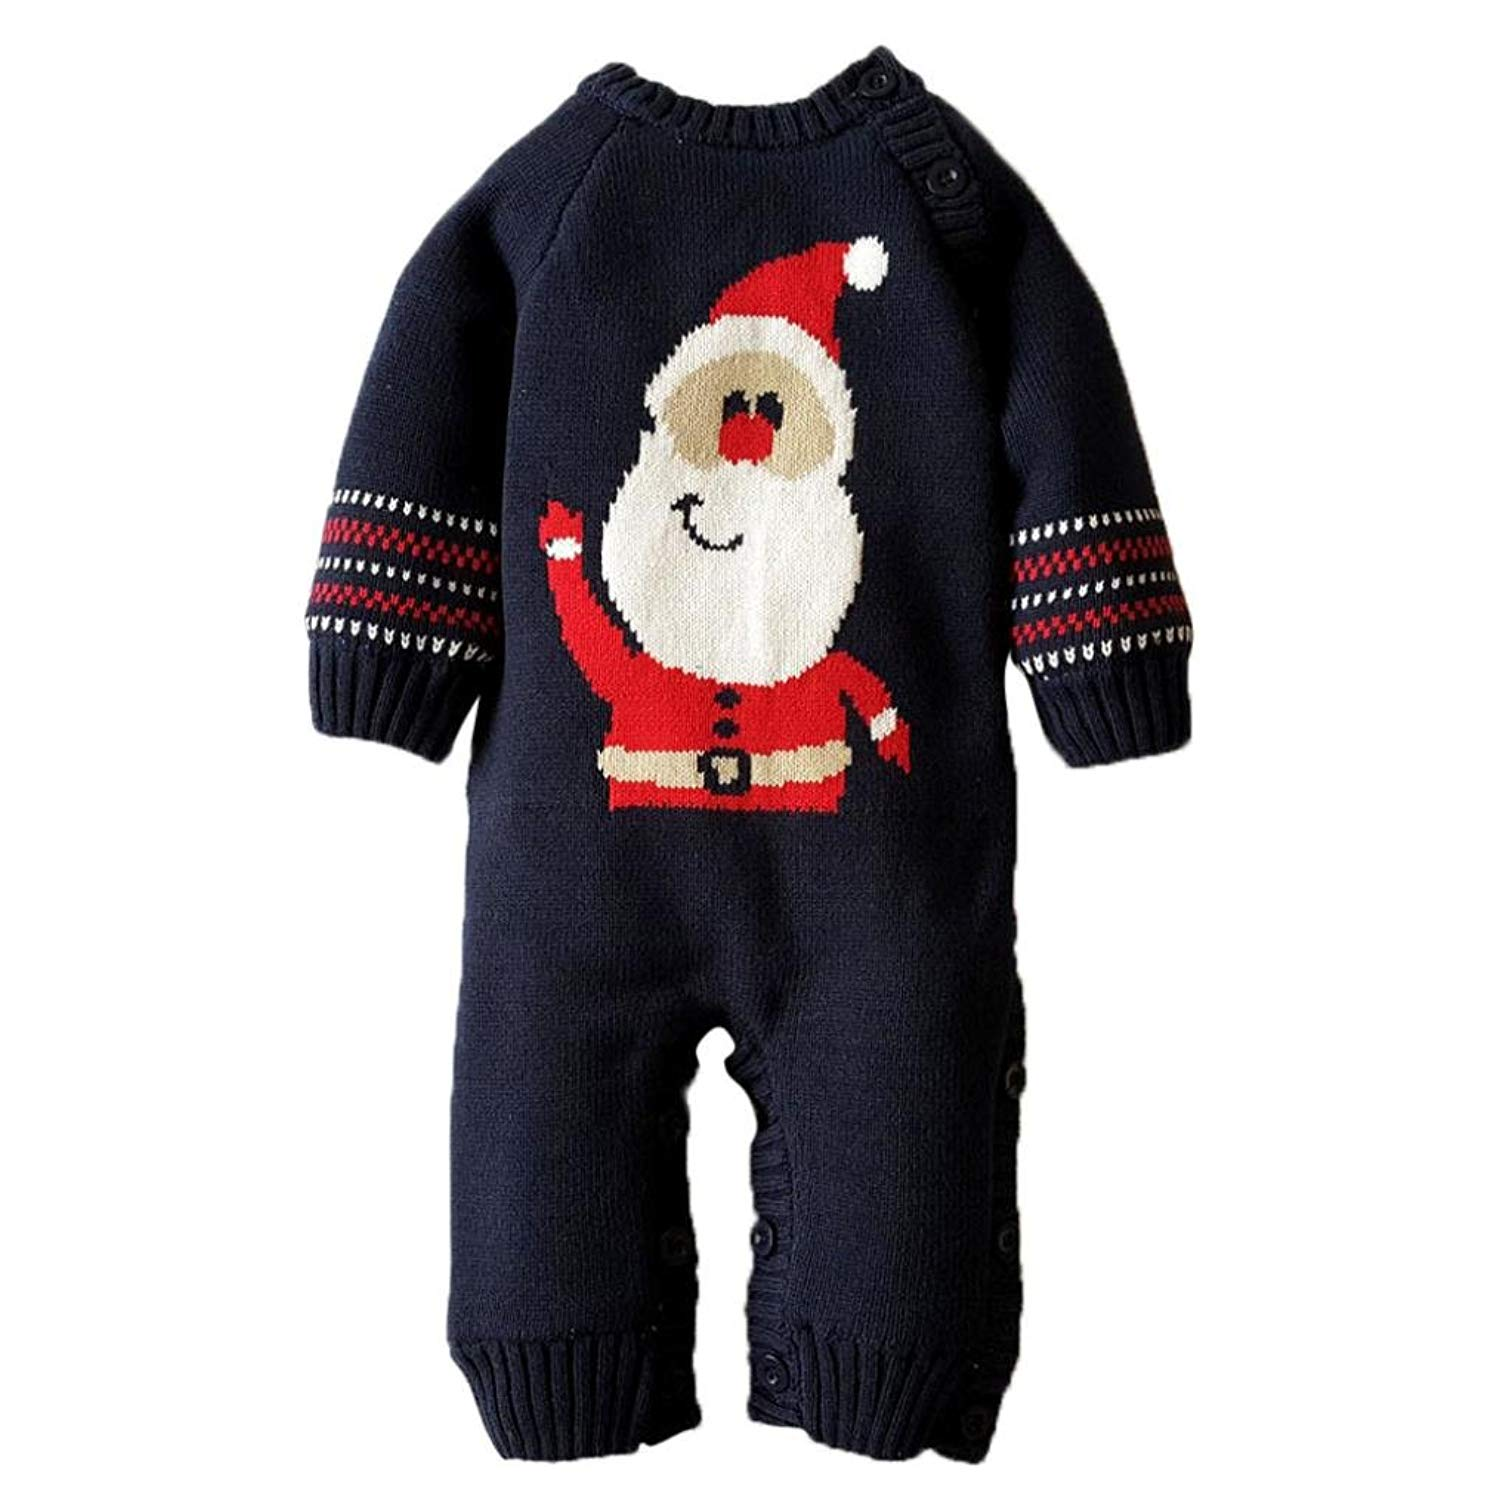 d47c2e26fbe3 Buy Christmas Snowman Knitted Sweater For Boys And Girls Winter ...